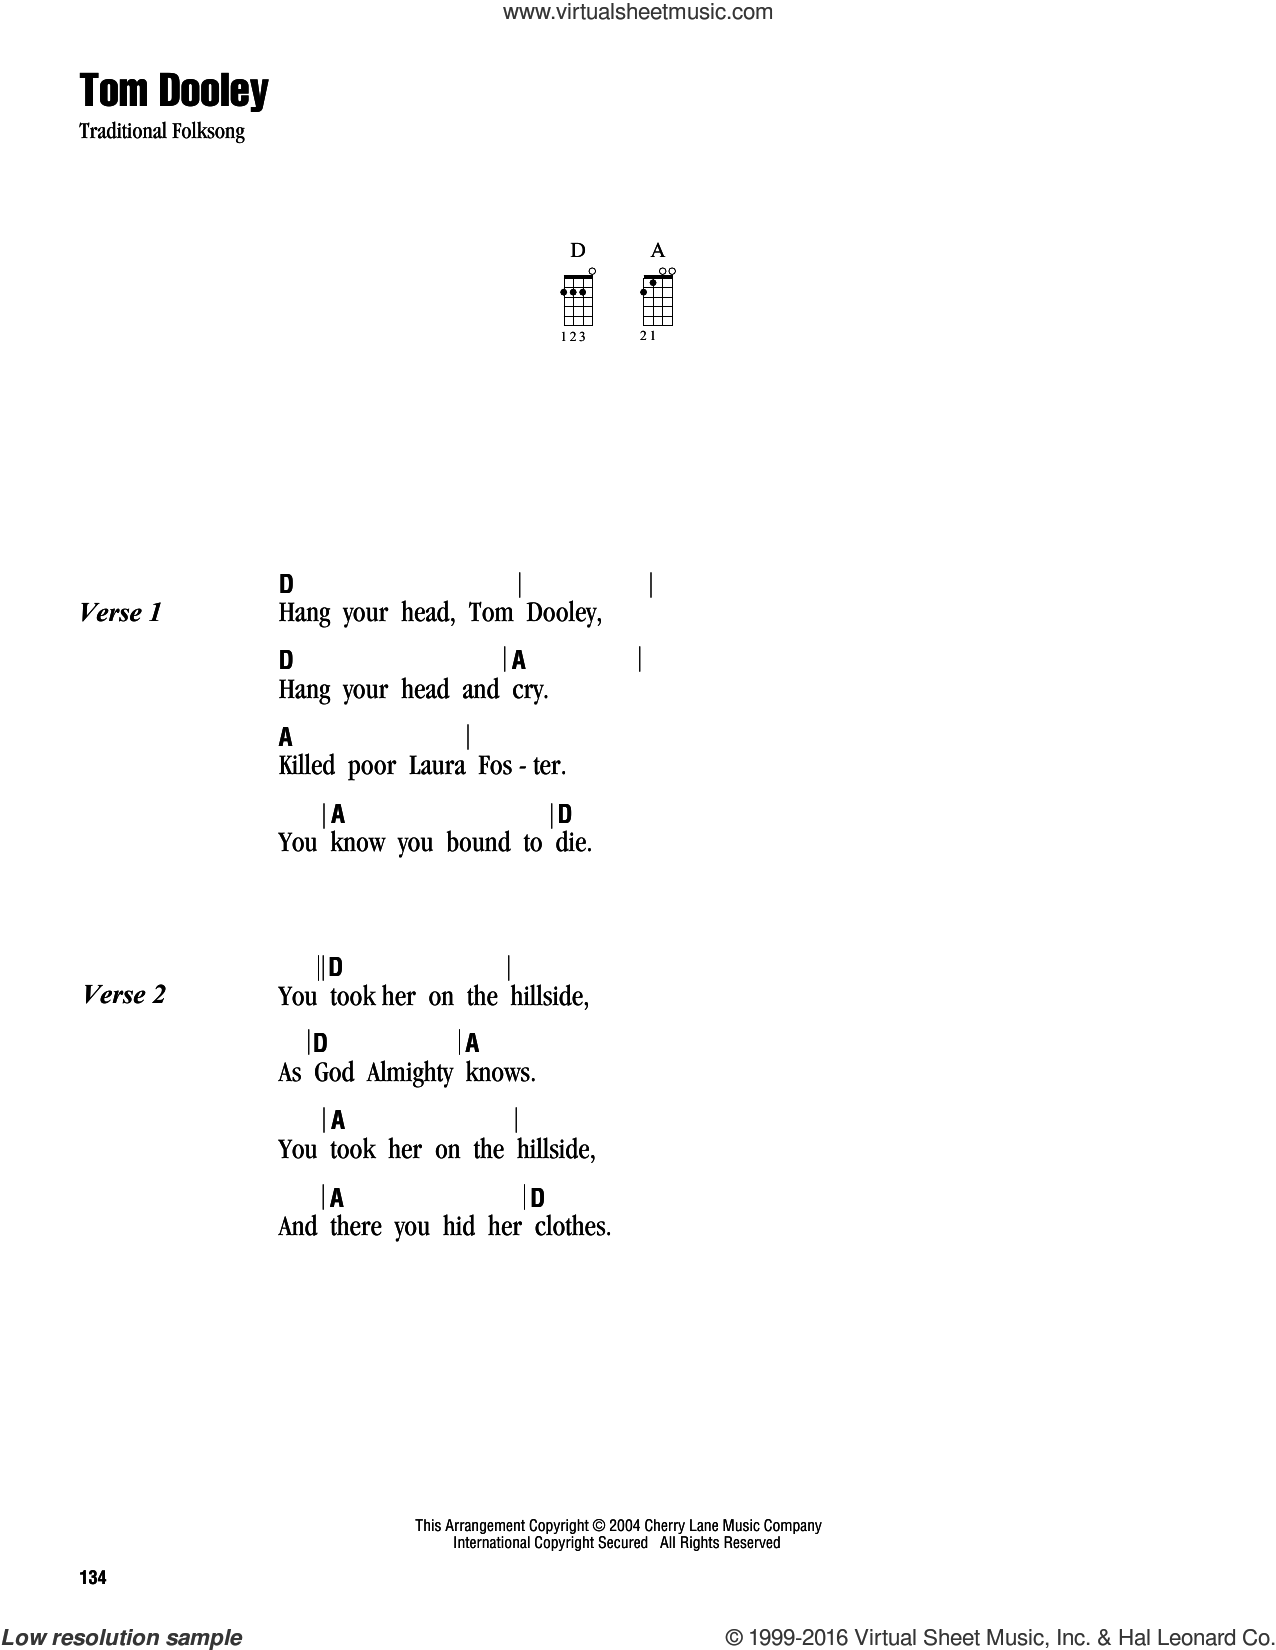 Tom Dooley sheet music for ukulele (chords). Score Image Preview.